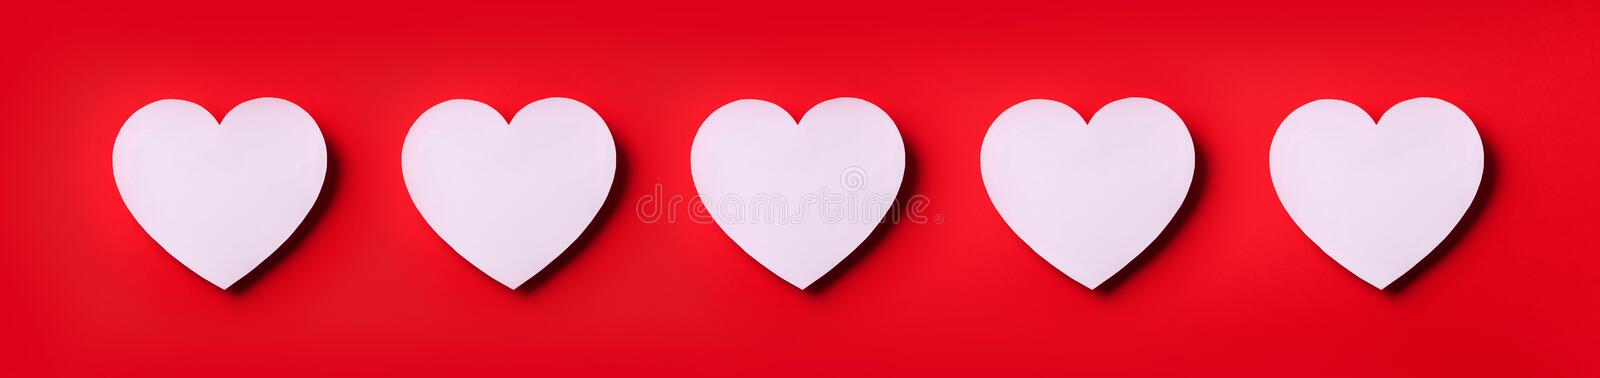 Seamless pattern of white hearts on red background. Top view. Valentine`s Day. Love, date, romantic concept. Banner.  stock images